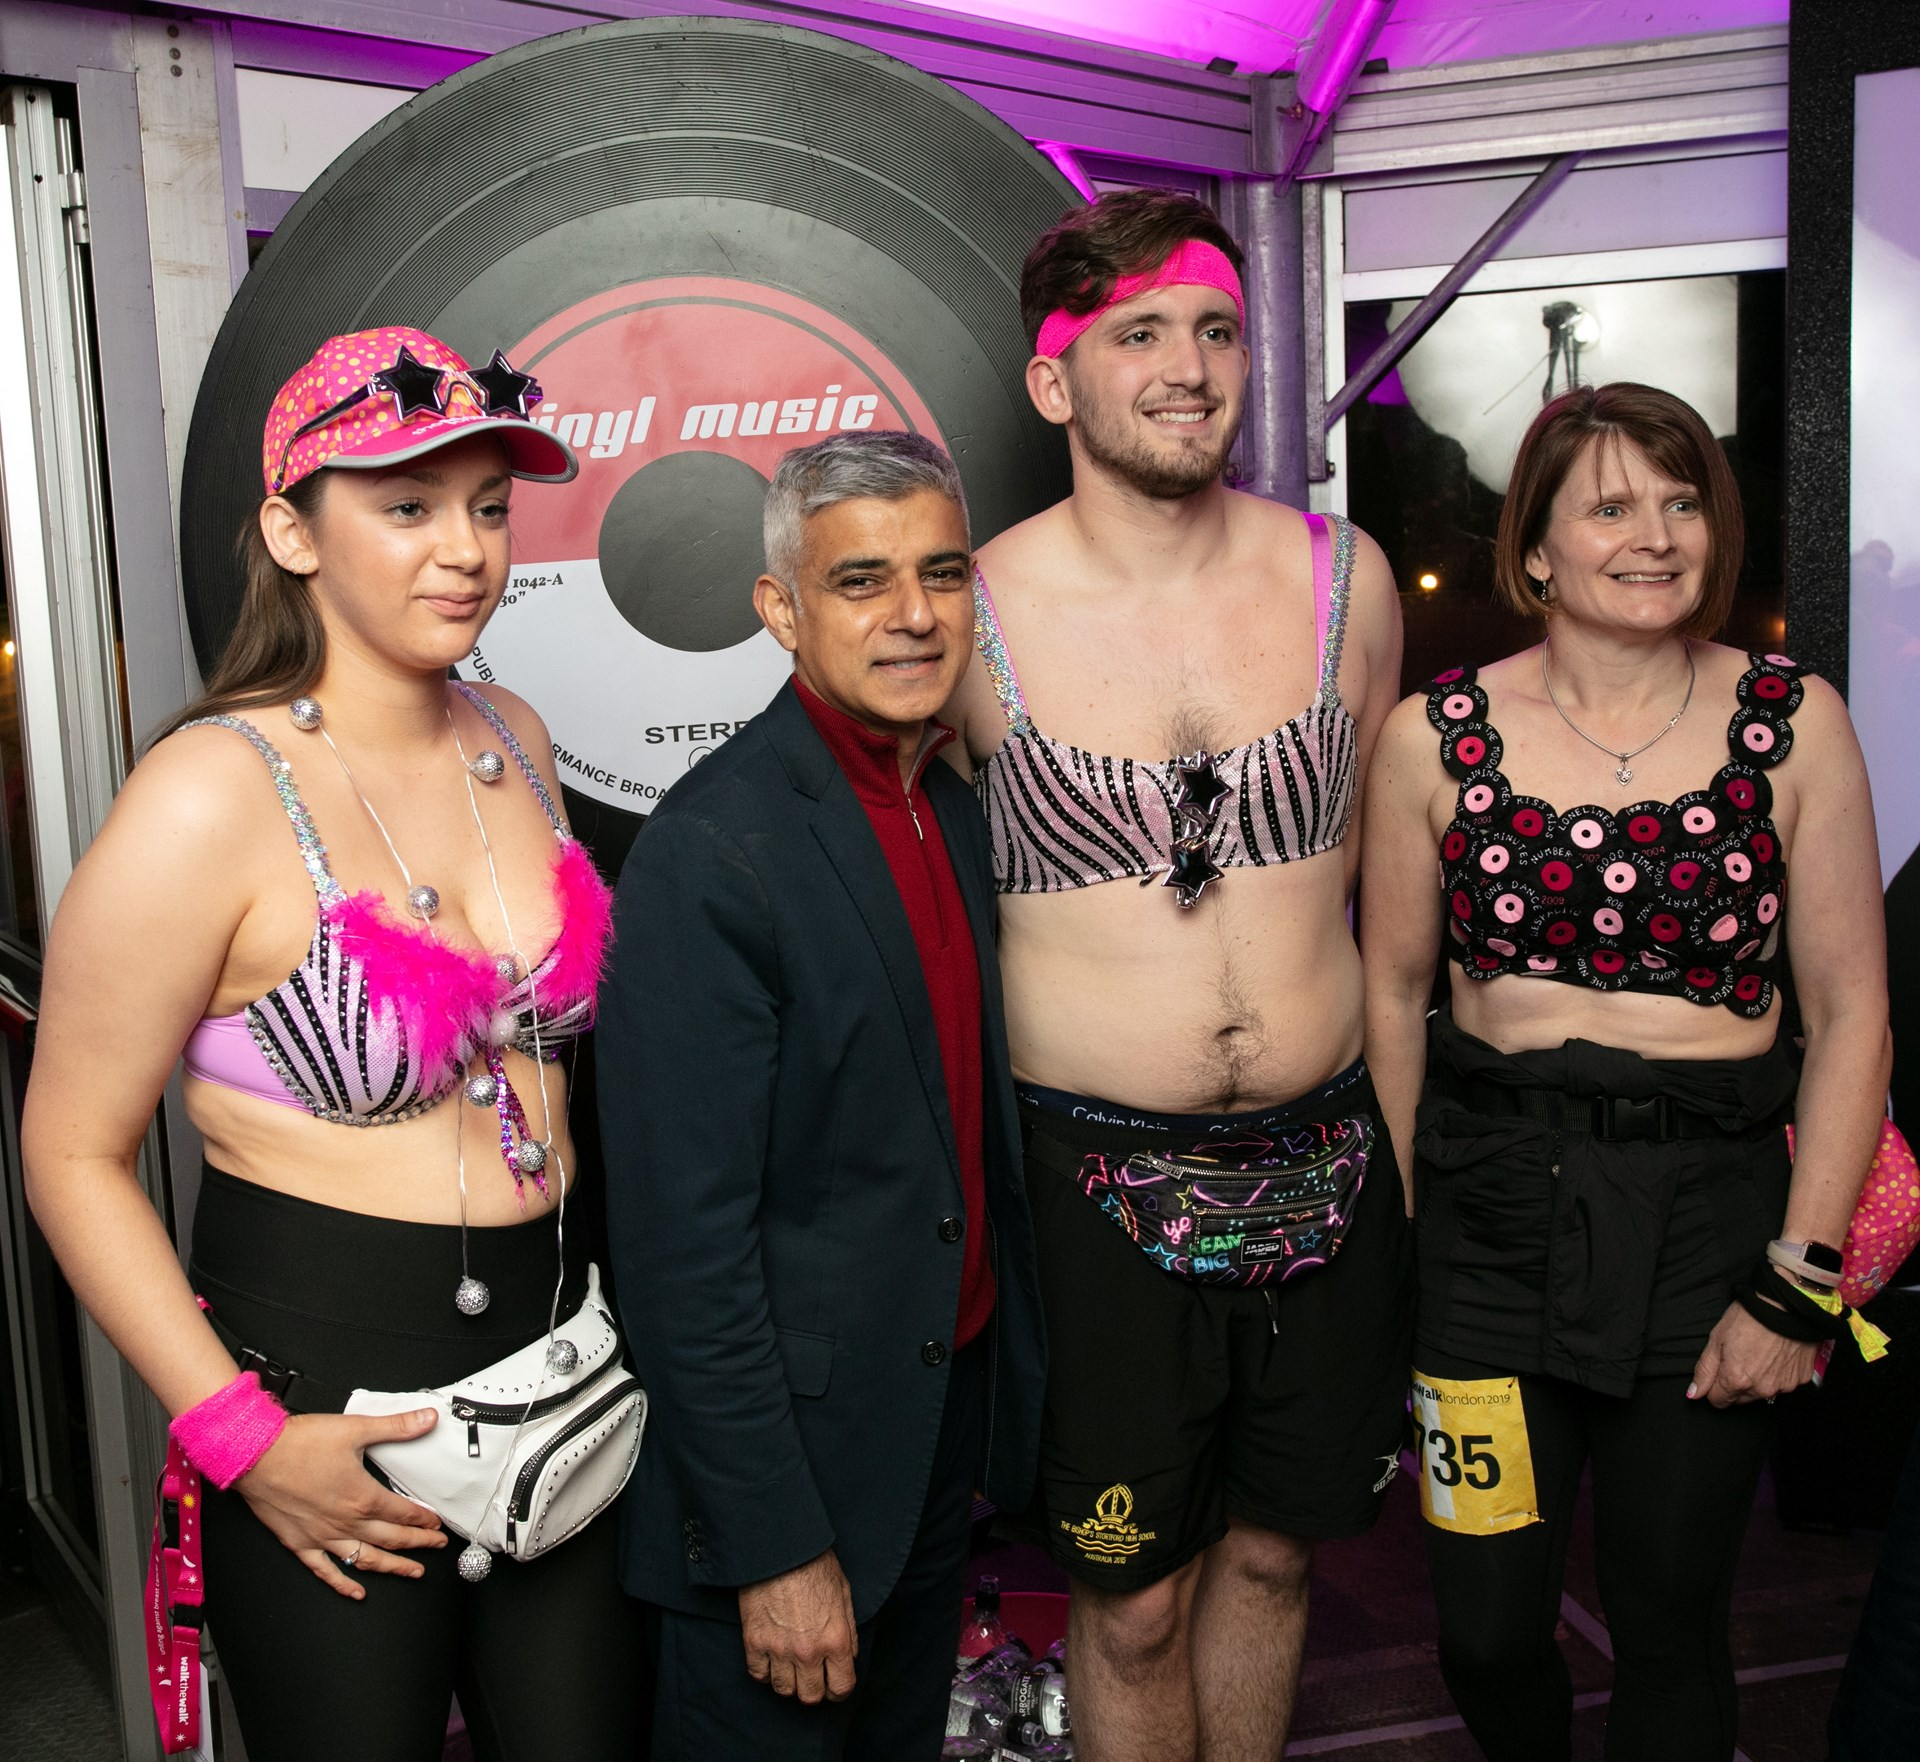 f957a146e Mayor of The MoonWalk! Sadiq Khan supports thousands of bra-wearing walkers  at iconic fundraising event